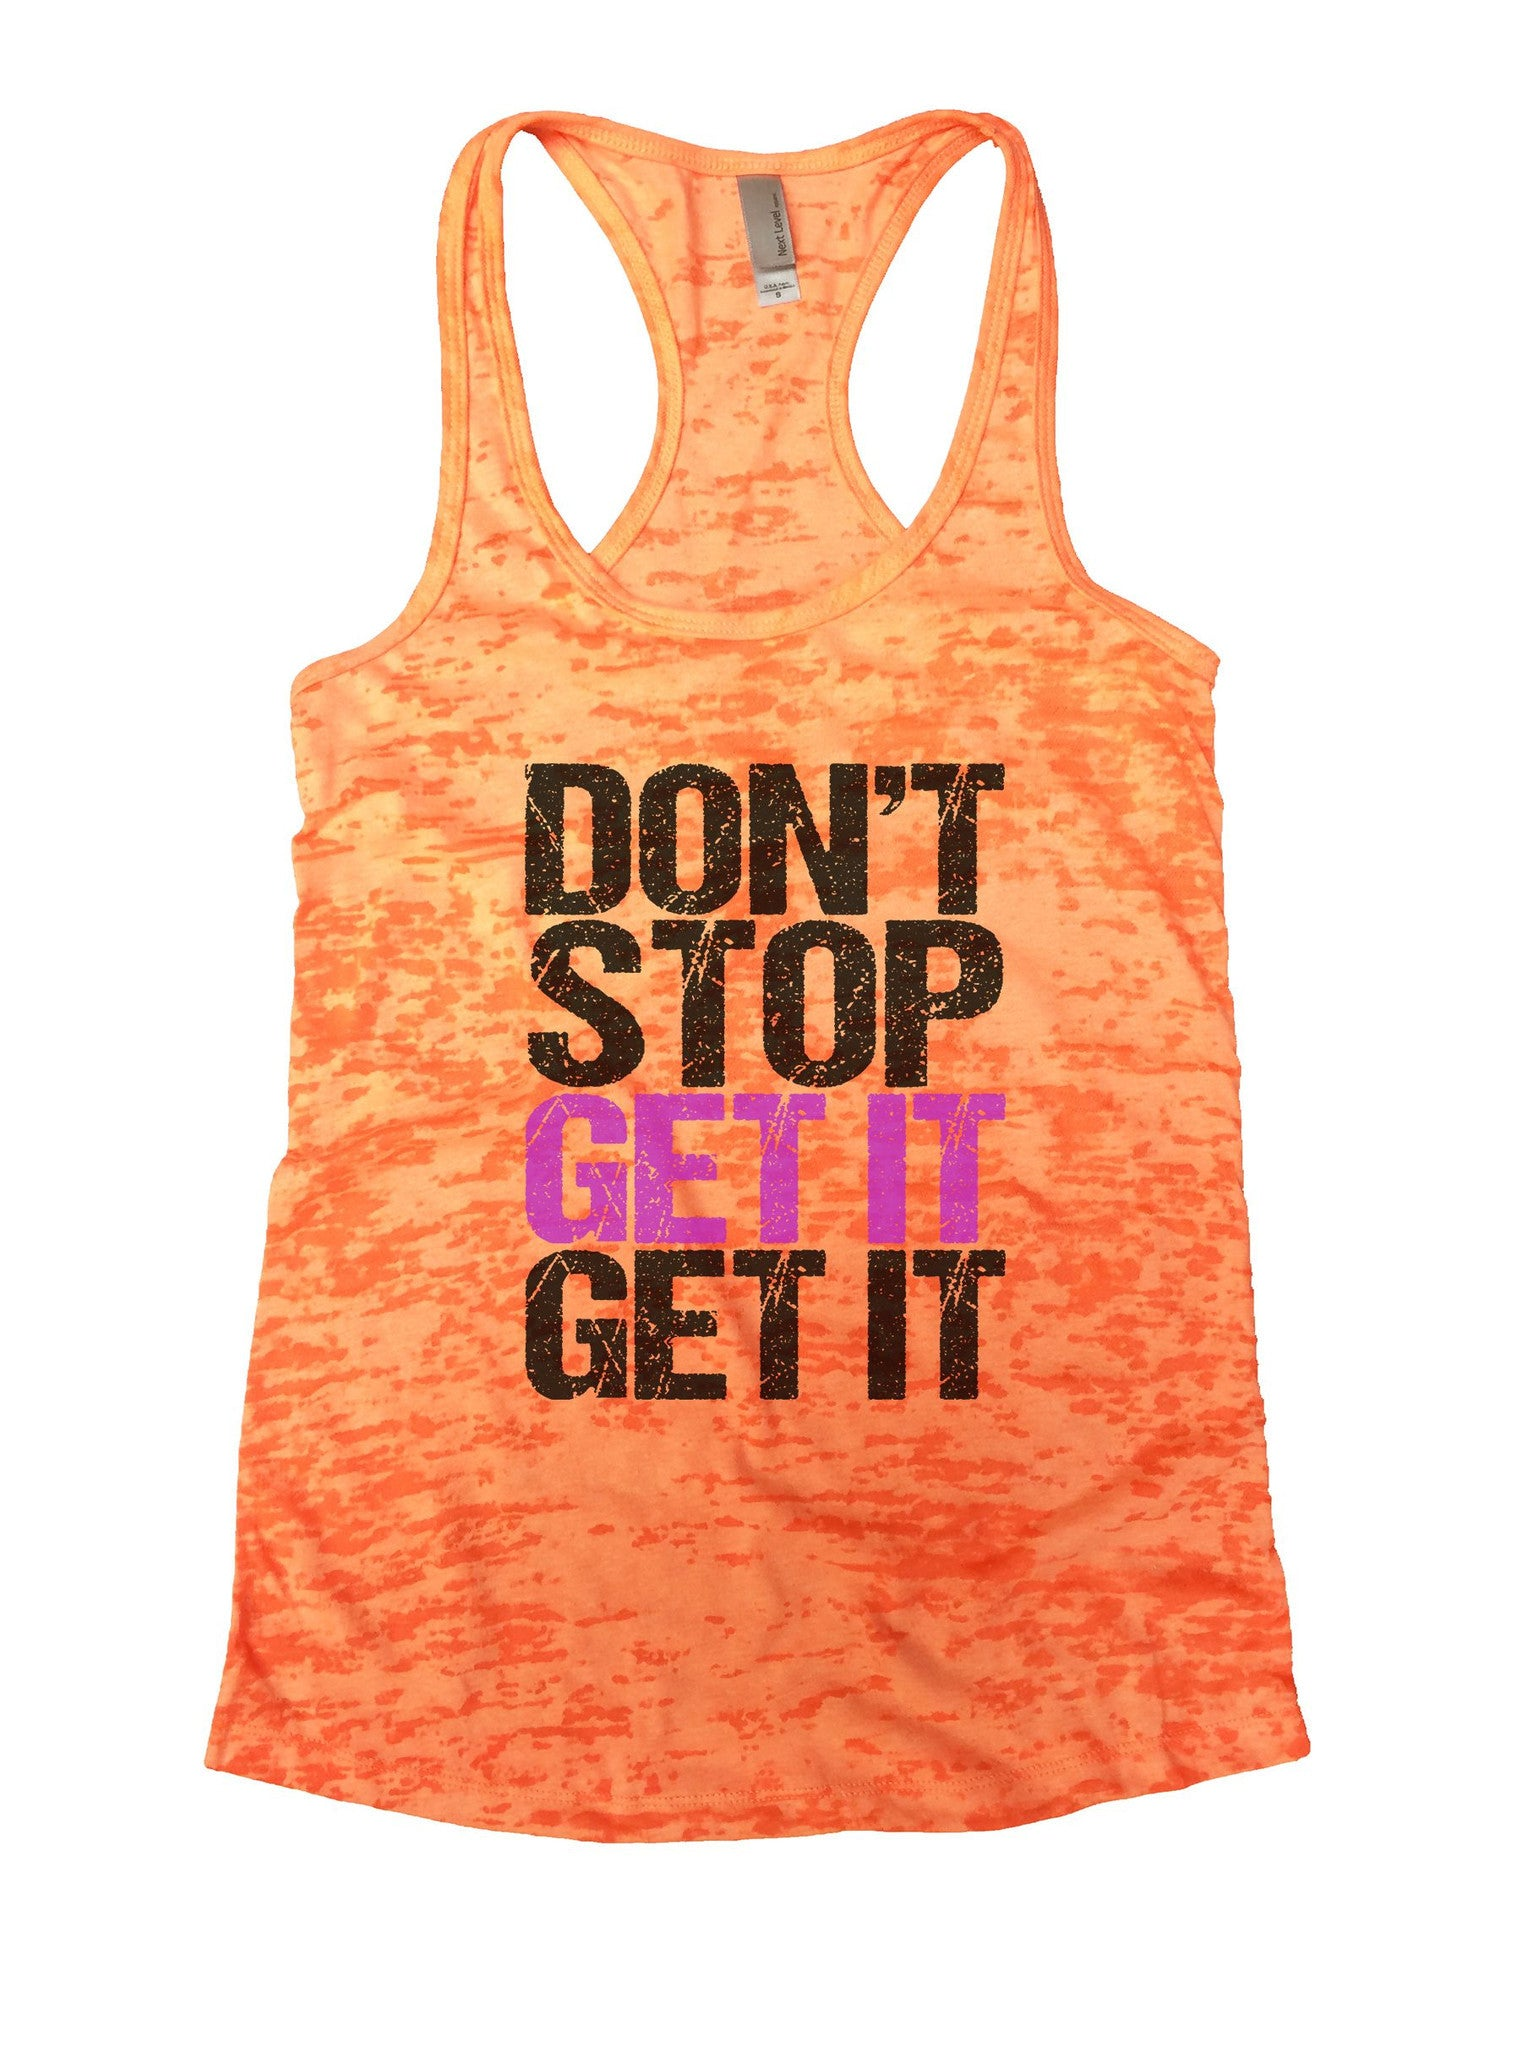 Don't Stop Get It Get It Burnout Tank Top By BurnoutTankTops.com - 1105 - Funny Shirts Tank Tops Burnouts and Triblends  - 2